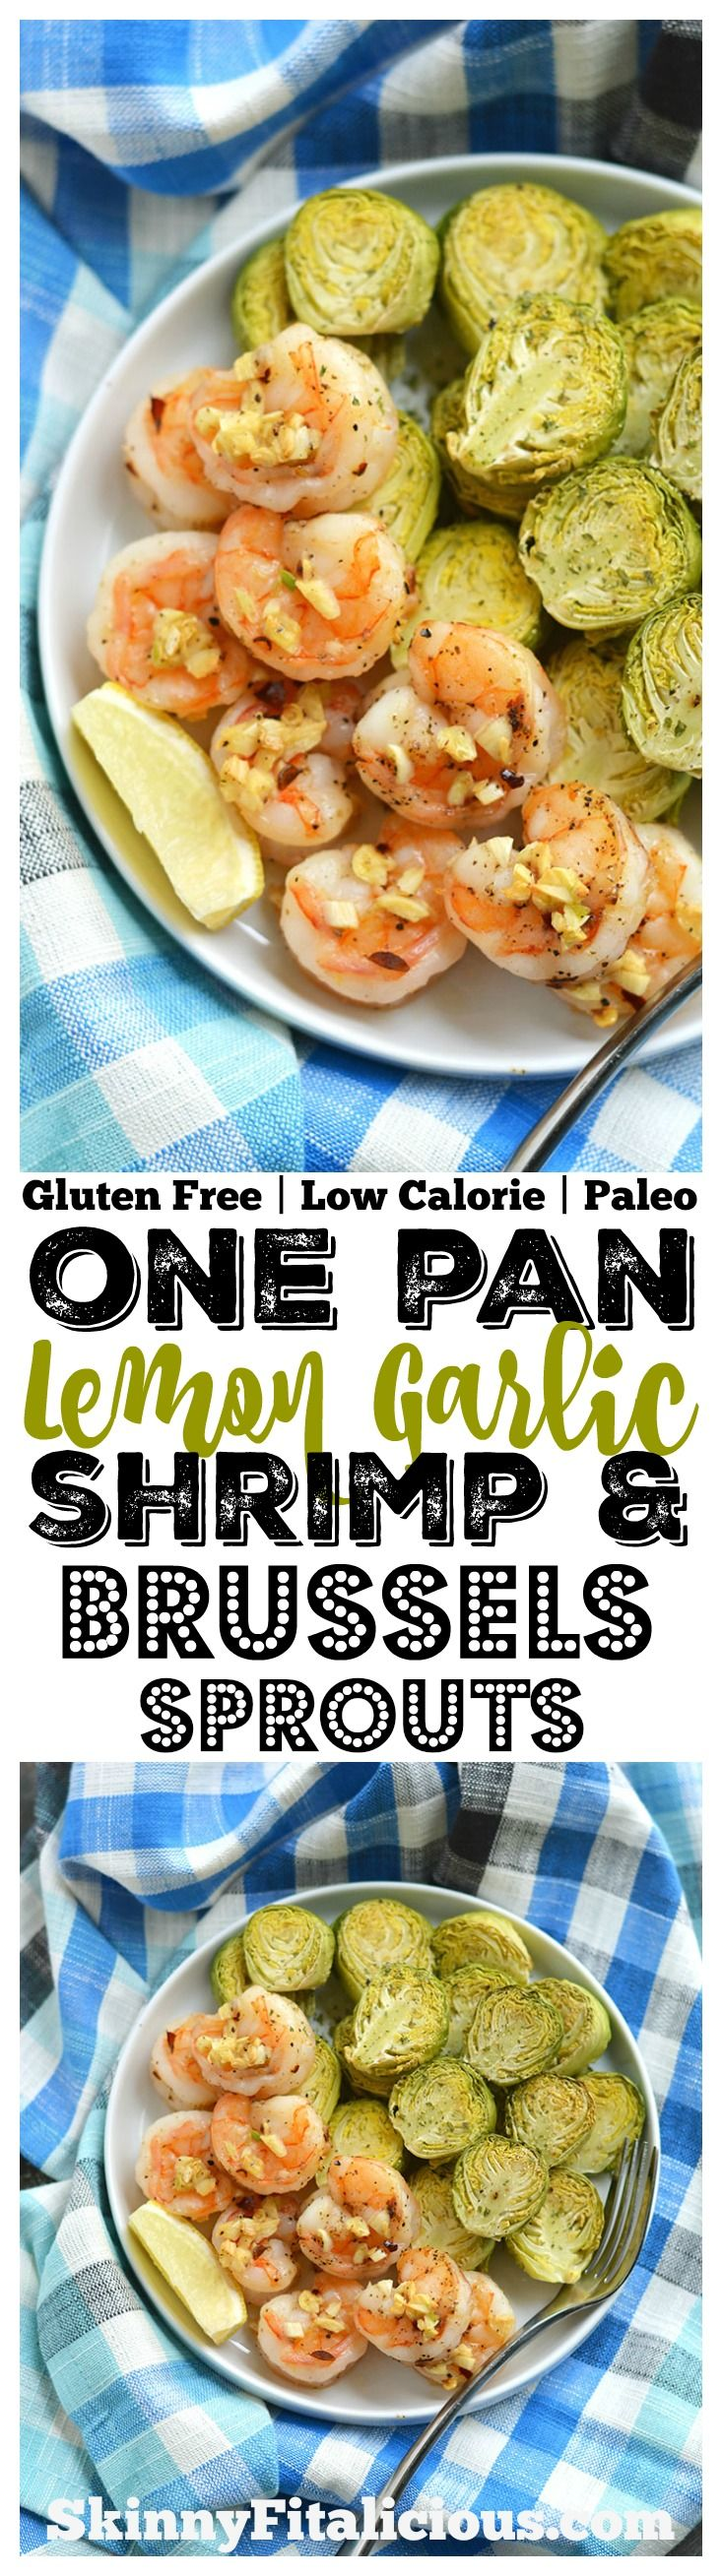 Healthy One Pan Lemon Garlic Shrimp & Brussels Sprouts! An amazing flavor combination of tender, garlicky shrimp that comes together in 20 minutes! Gluten Free + Low Calorie + Paleo